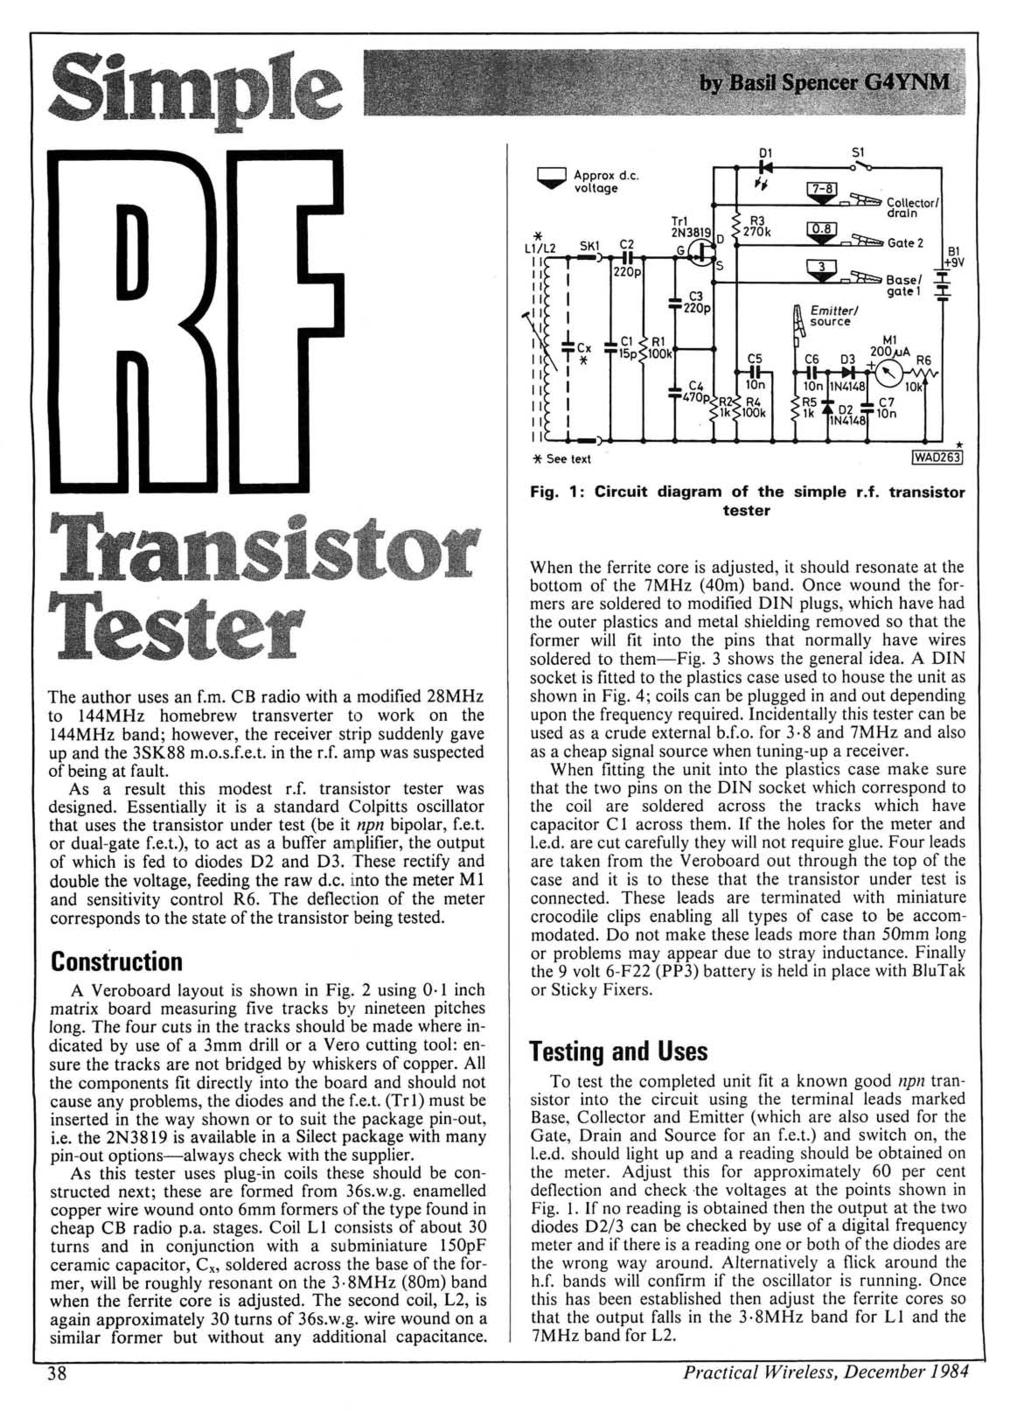 A New Approach To Hf Antennae Design Typical Spec Tor No Of Fet Preamp With Tone Control By 2n3819 Americanradiohistorycom Sitnple O R Approx De Voltage I 1